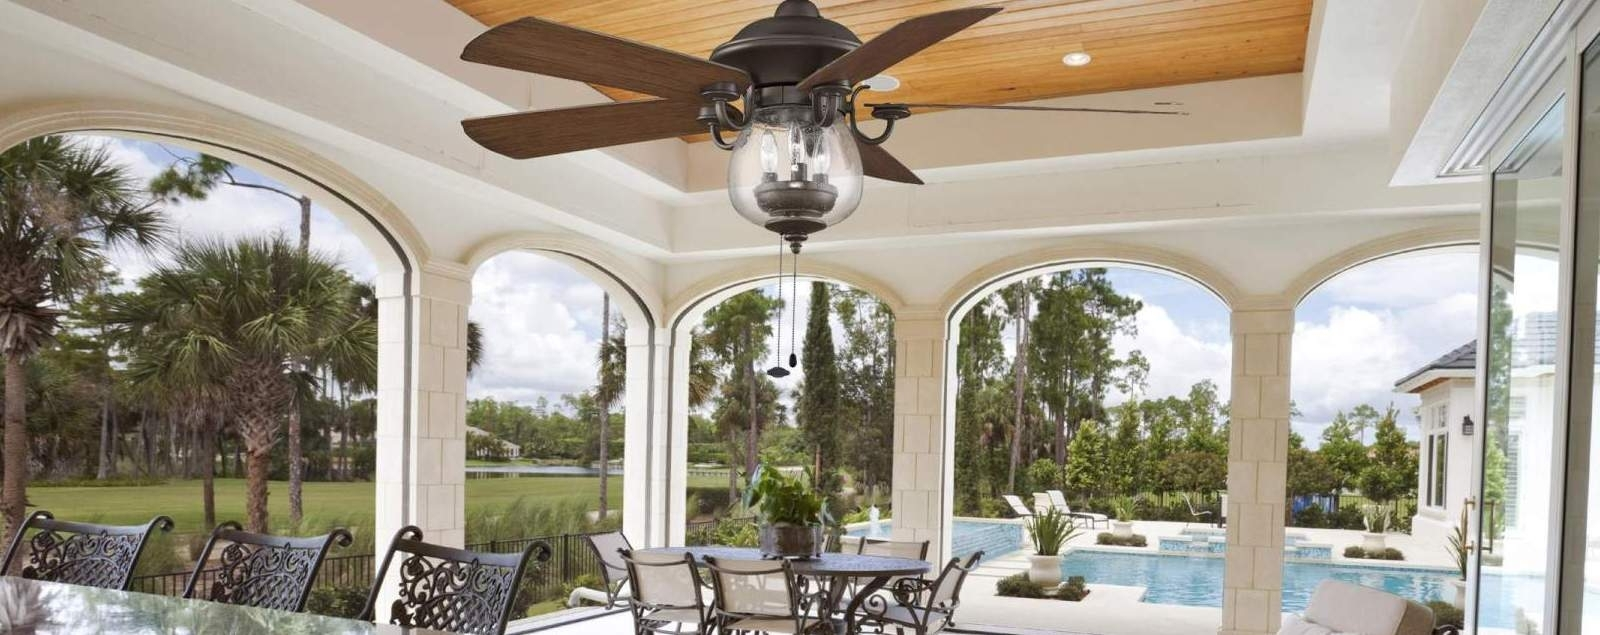 Favorite Outdoor Porch Ceiling Fans With Lights Regarding Outdoor Ceiling Fans – Shop Wet, Dry, And Damp Rated Outdoor Fans (Gallery 2 of 20)